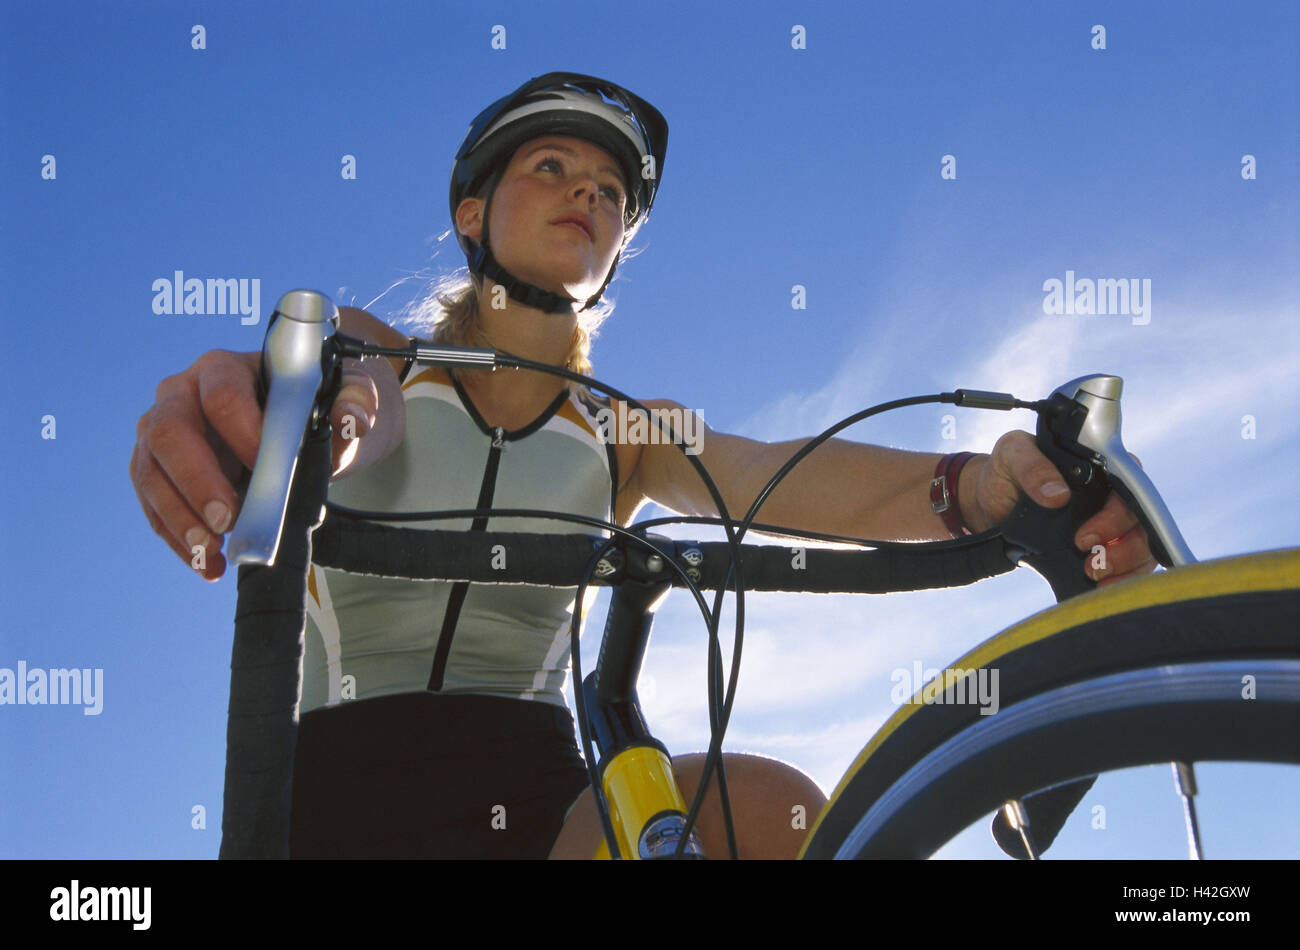 Racing cyclist, detail, back light, from below woman, sportswoman, 20-30 years, racing radian, cyclist, leisure - Stock Image